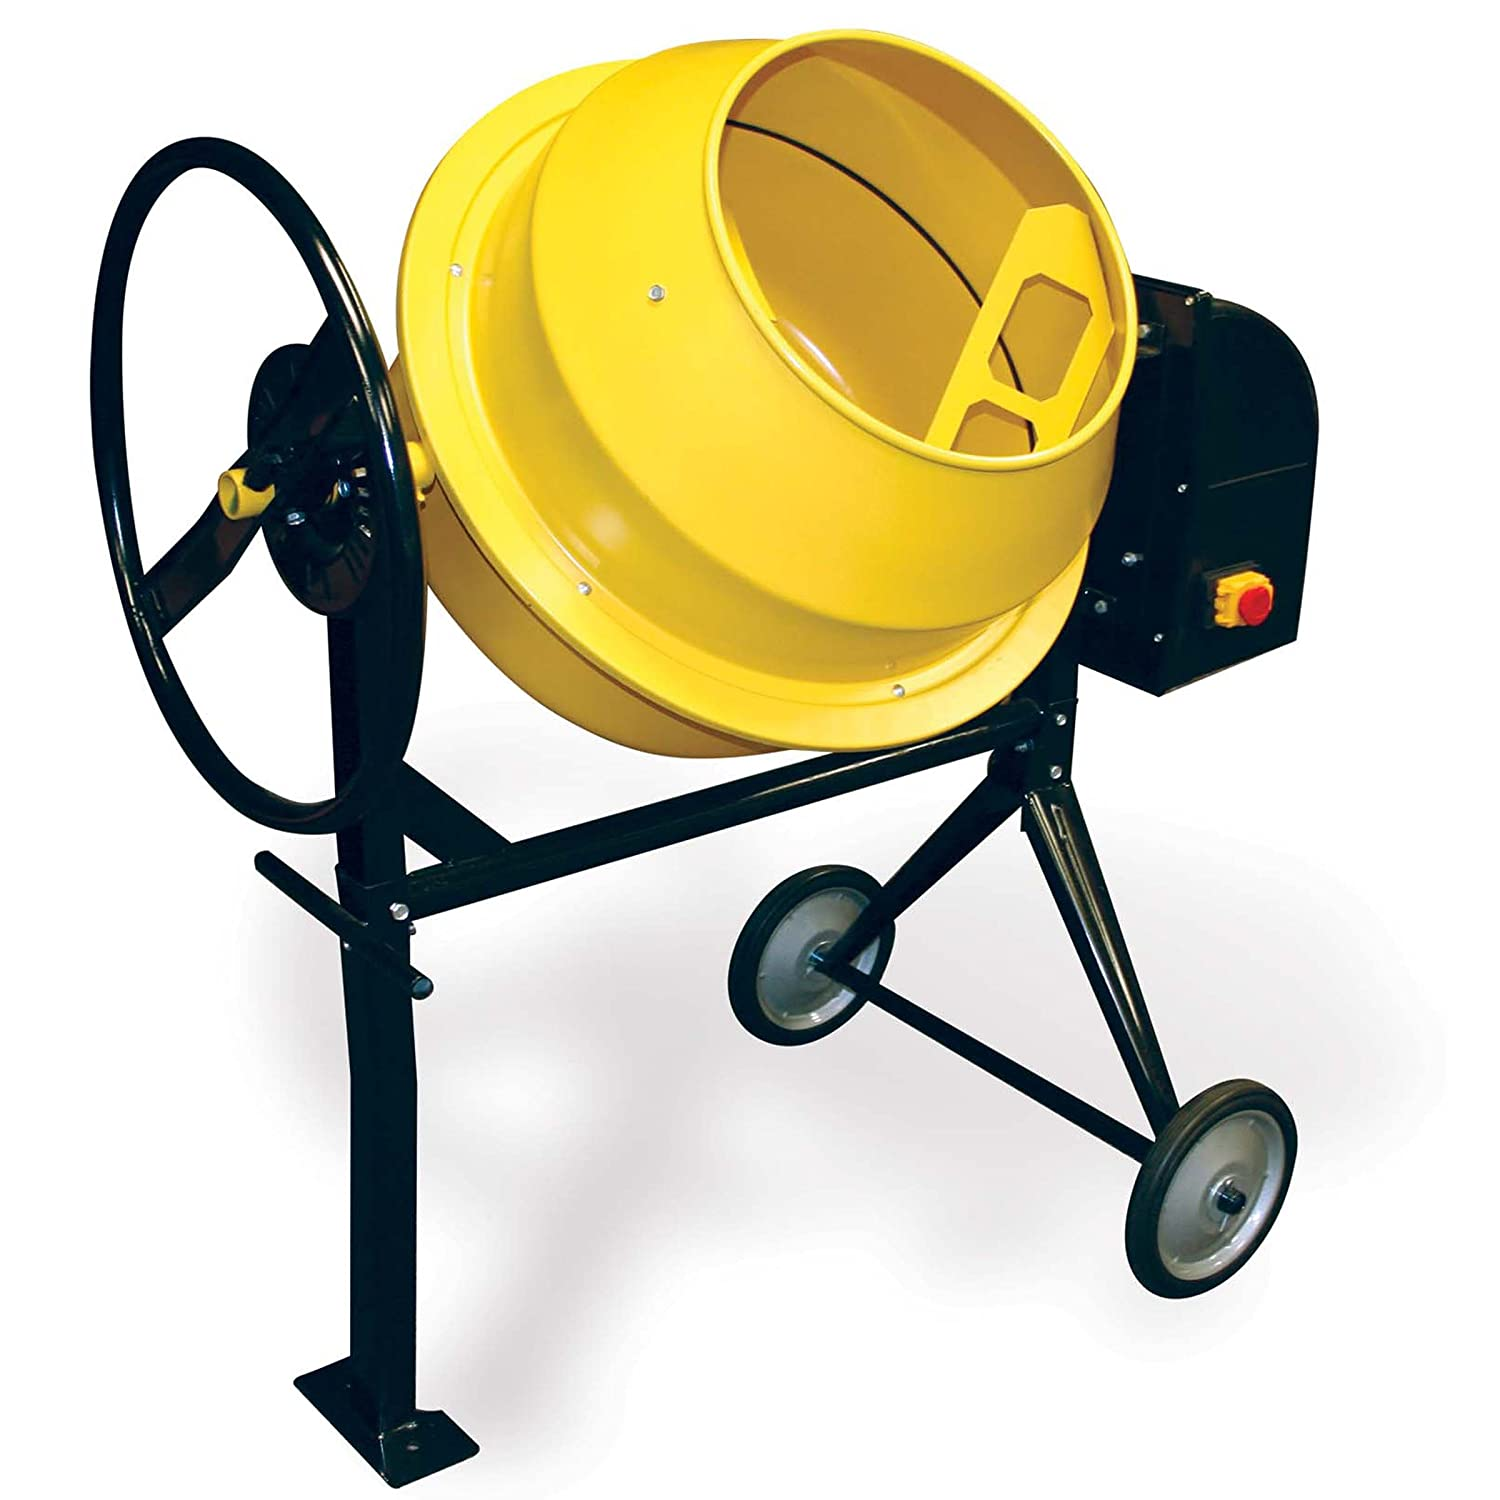 71zFI6fgndL._SL1500_ amazon com pro series cme35 electric cement mixer, 3 5 cubic feet Basic Electrical Wiring Diagrams at gsmportal.co